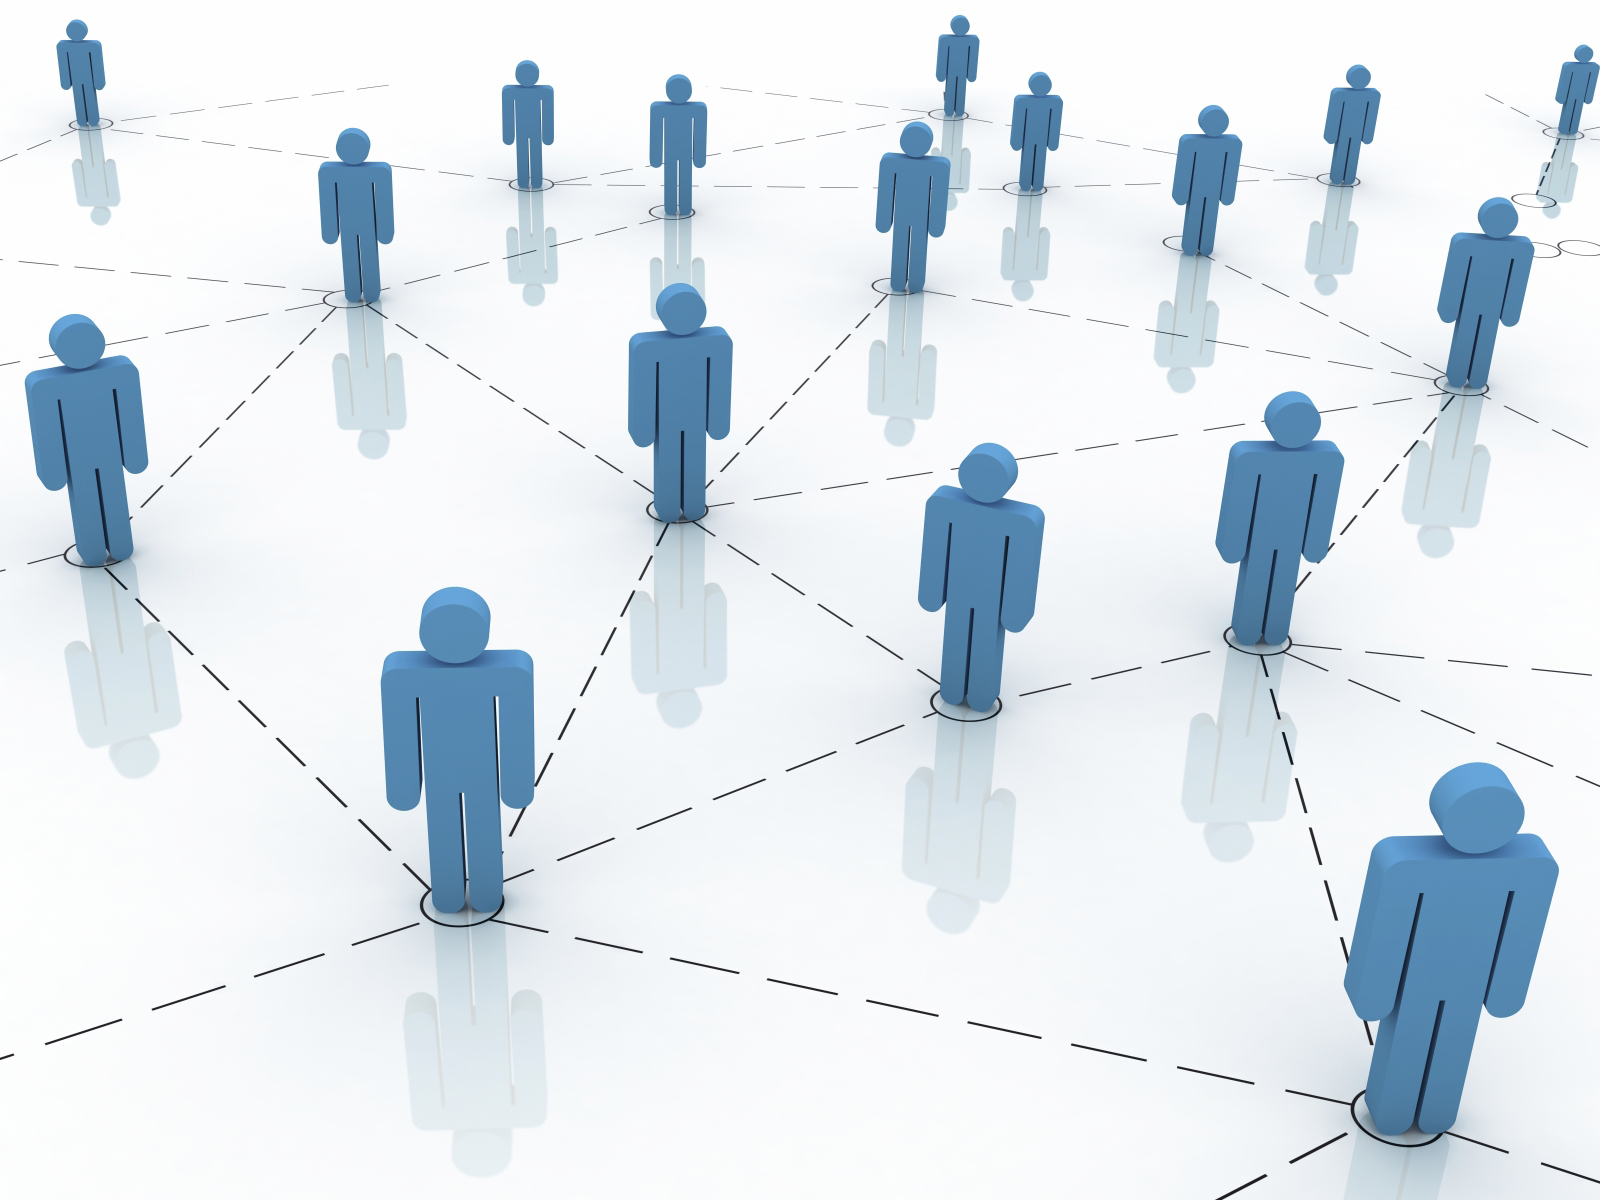 3 local studies about networking 13 what is a social networking does it affect their studies negatively or it help in the lay of the land & our knowledgeable about local flora.